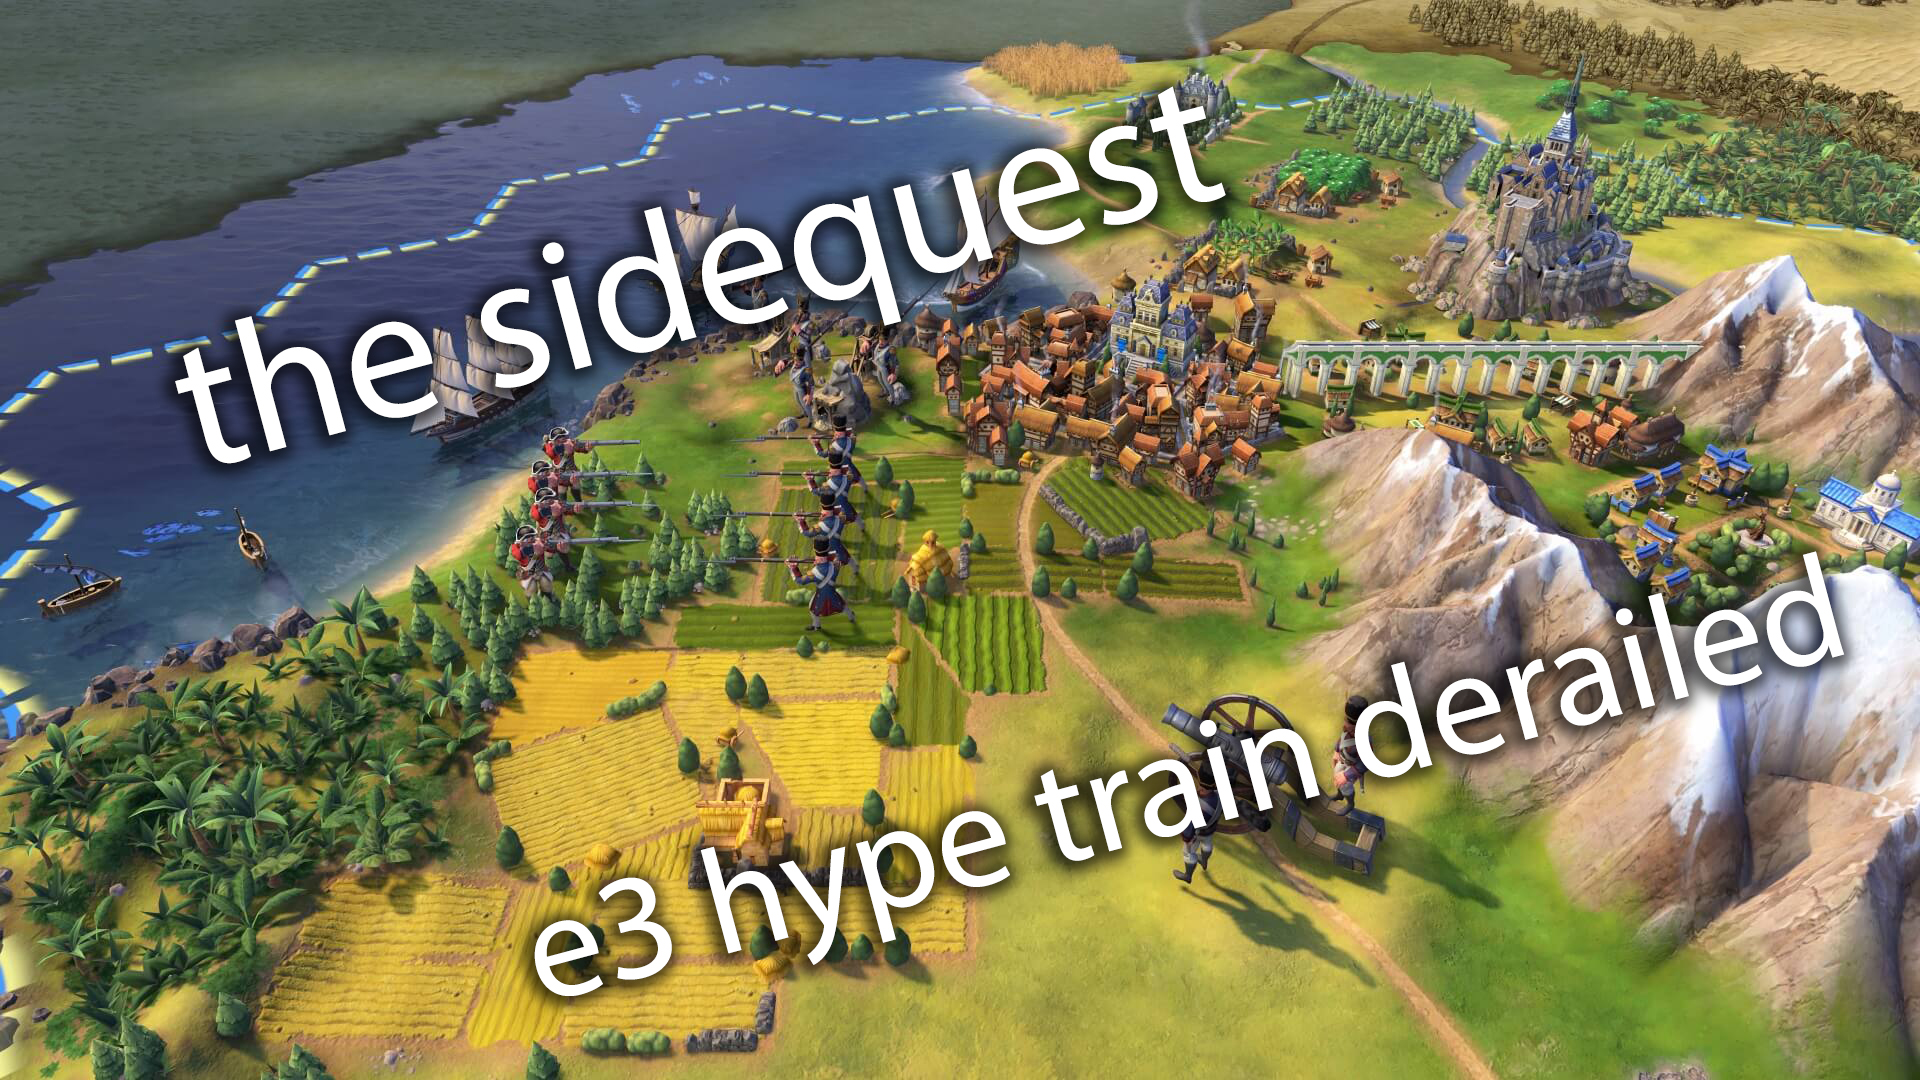 The SideQuest LIVE! May 22, 2020: The E3 Hype Train has been derailed